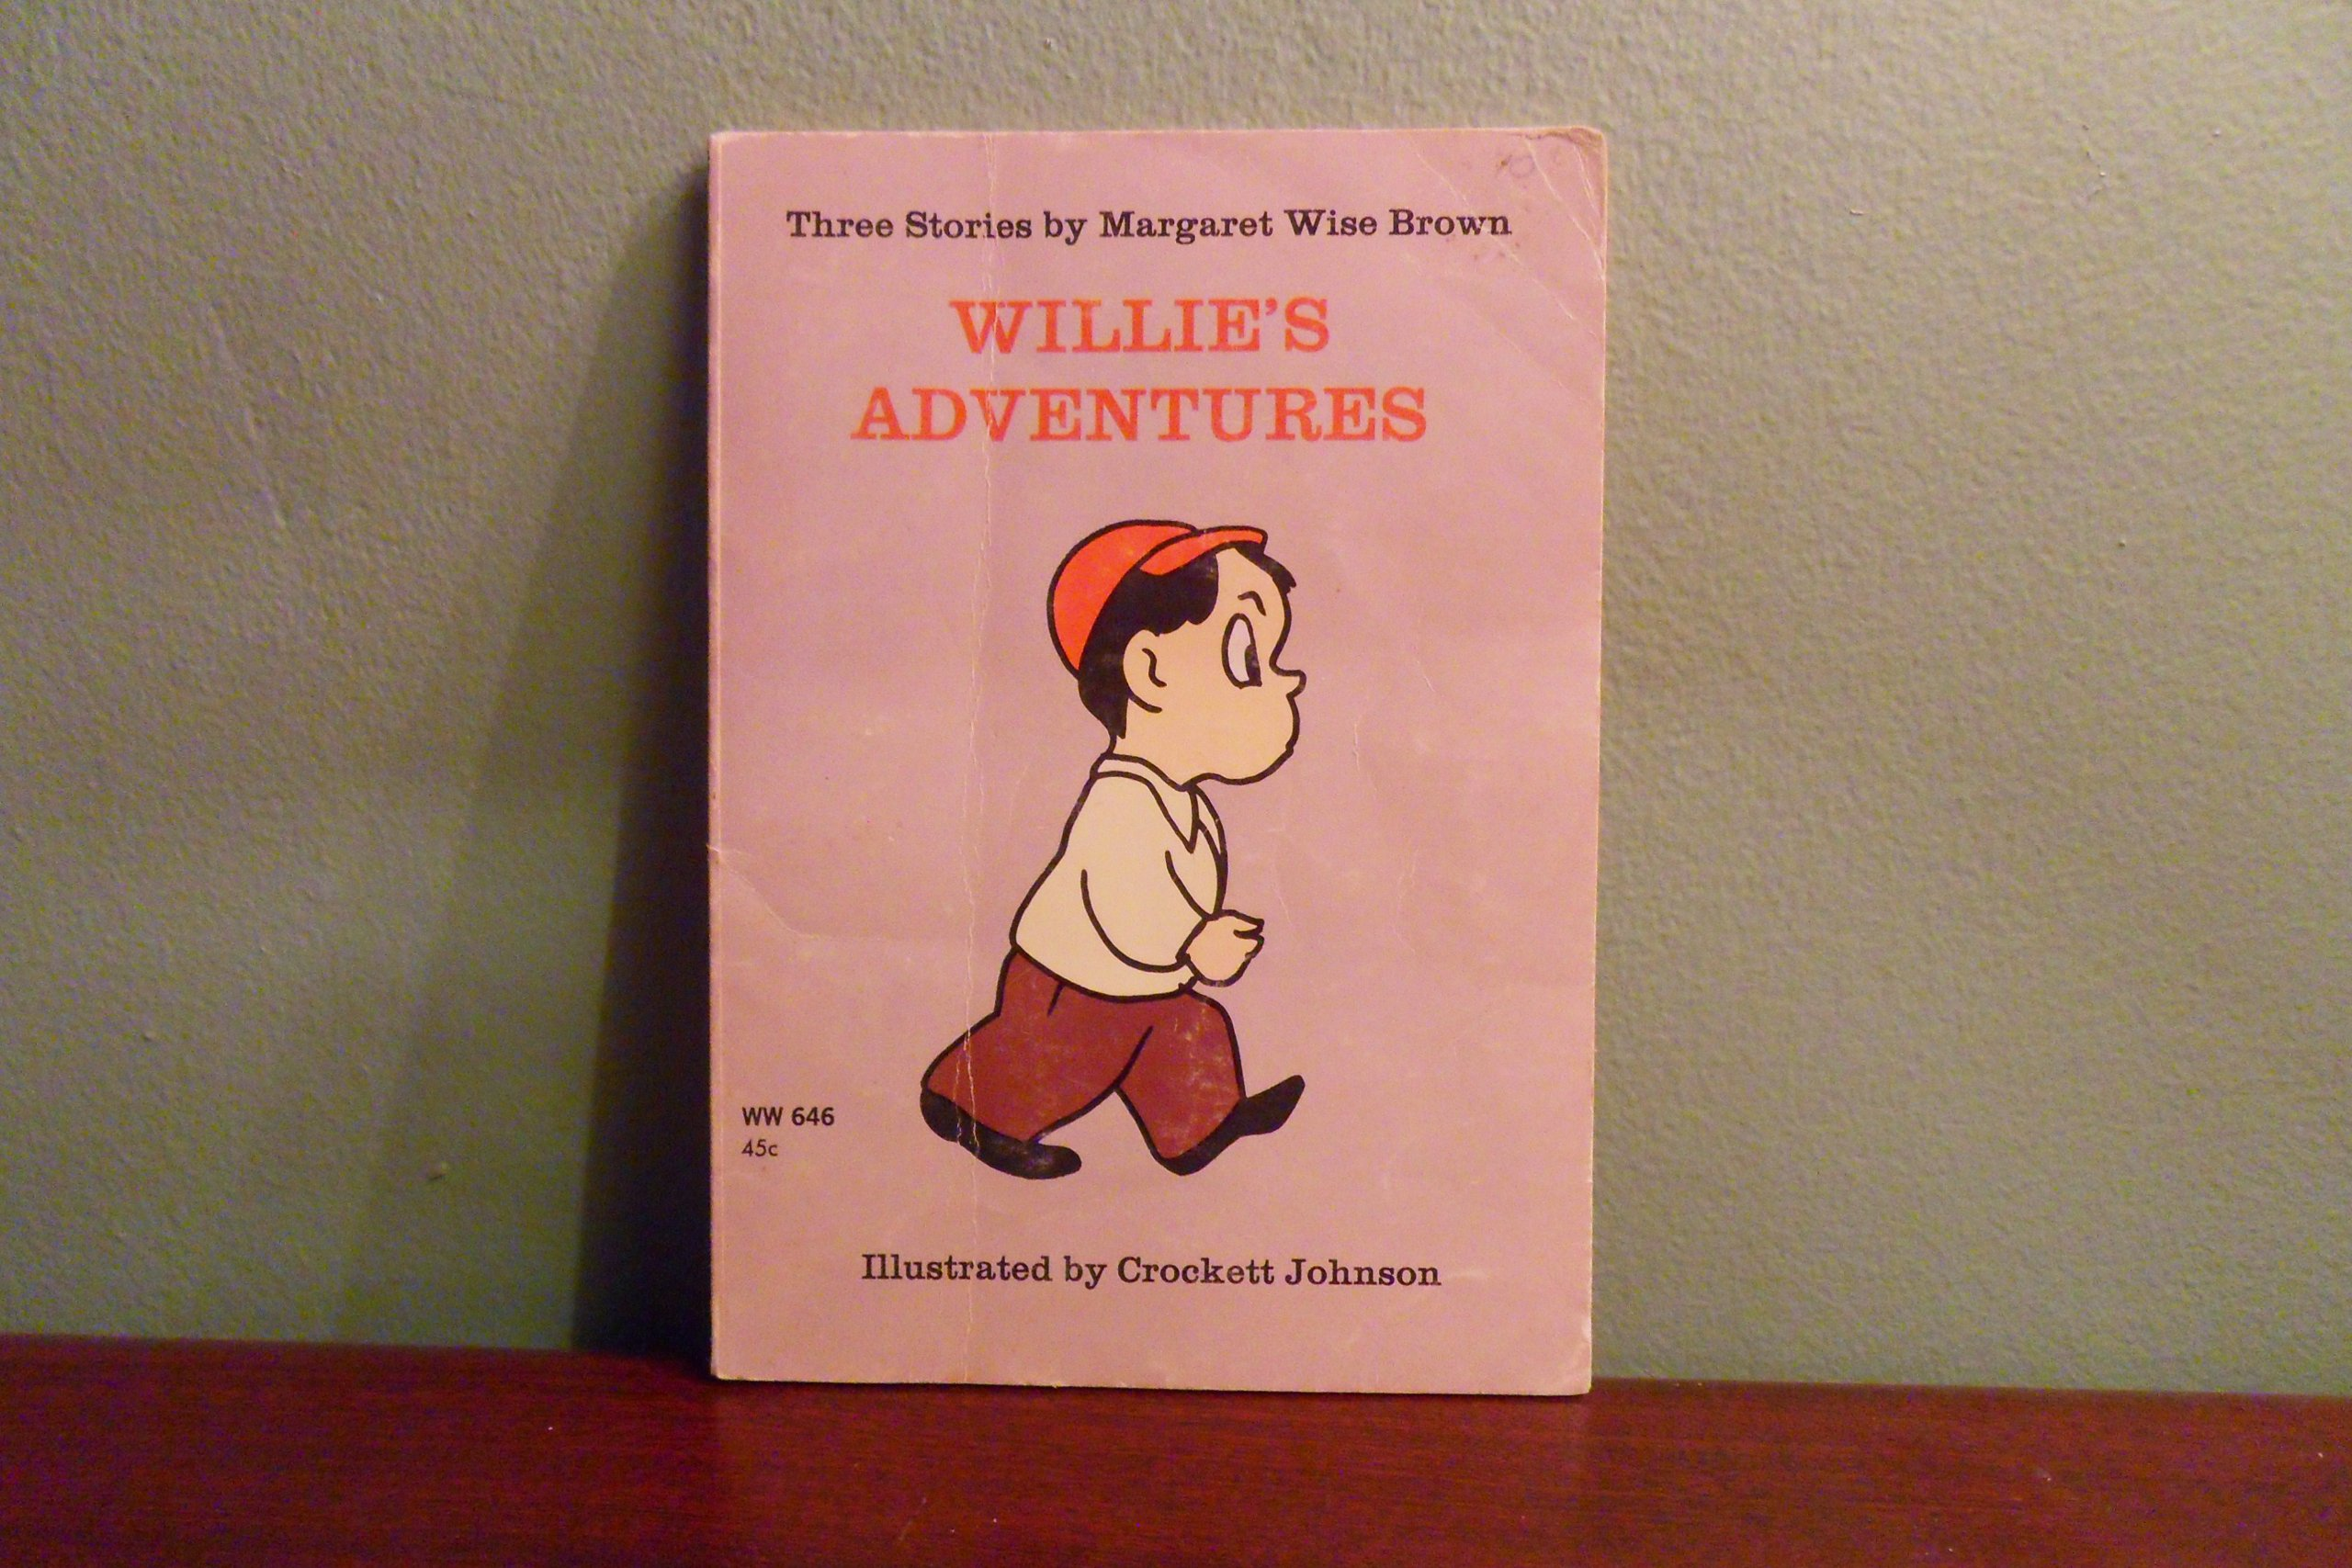 Willie's Adventures, Margaret Wise Brown